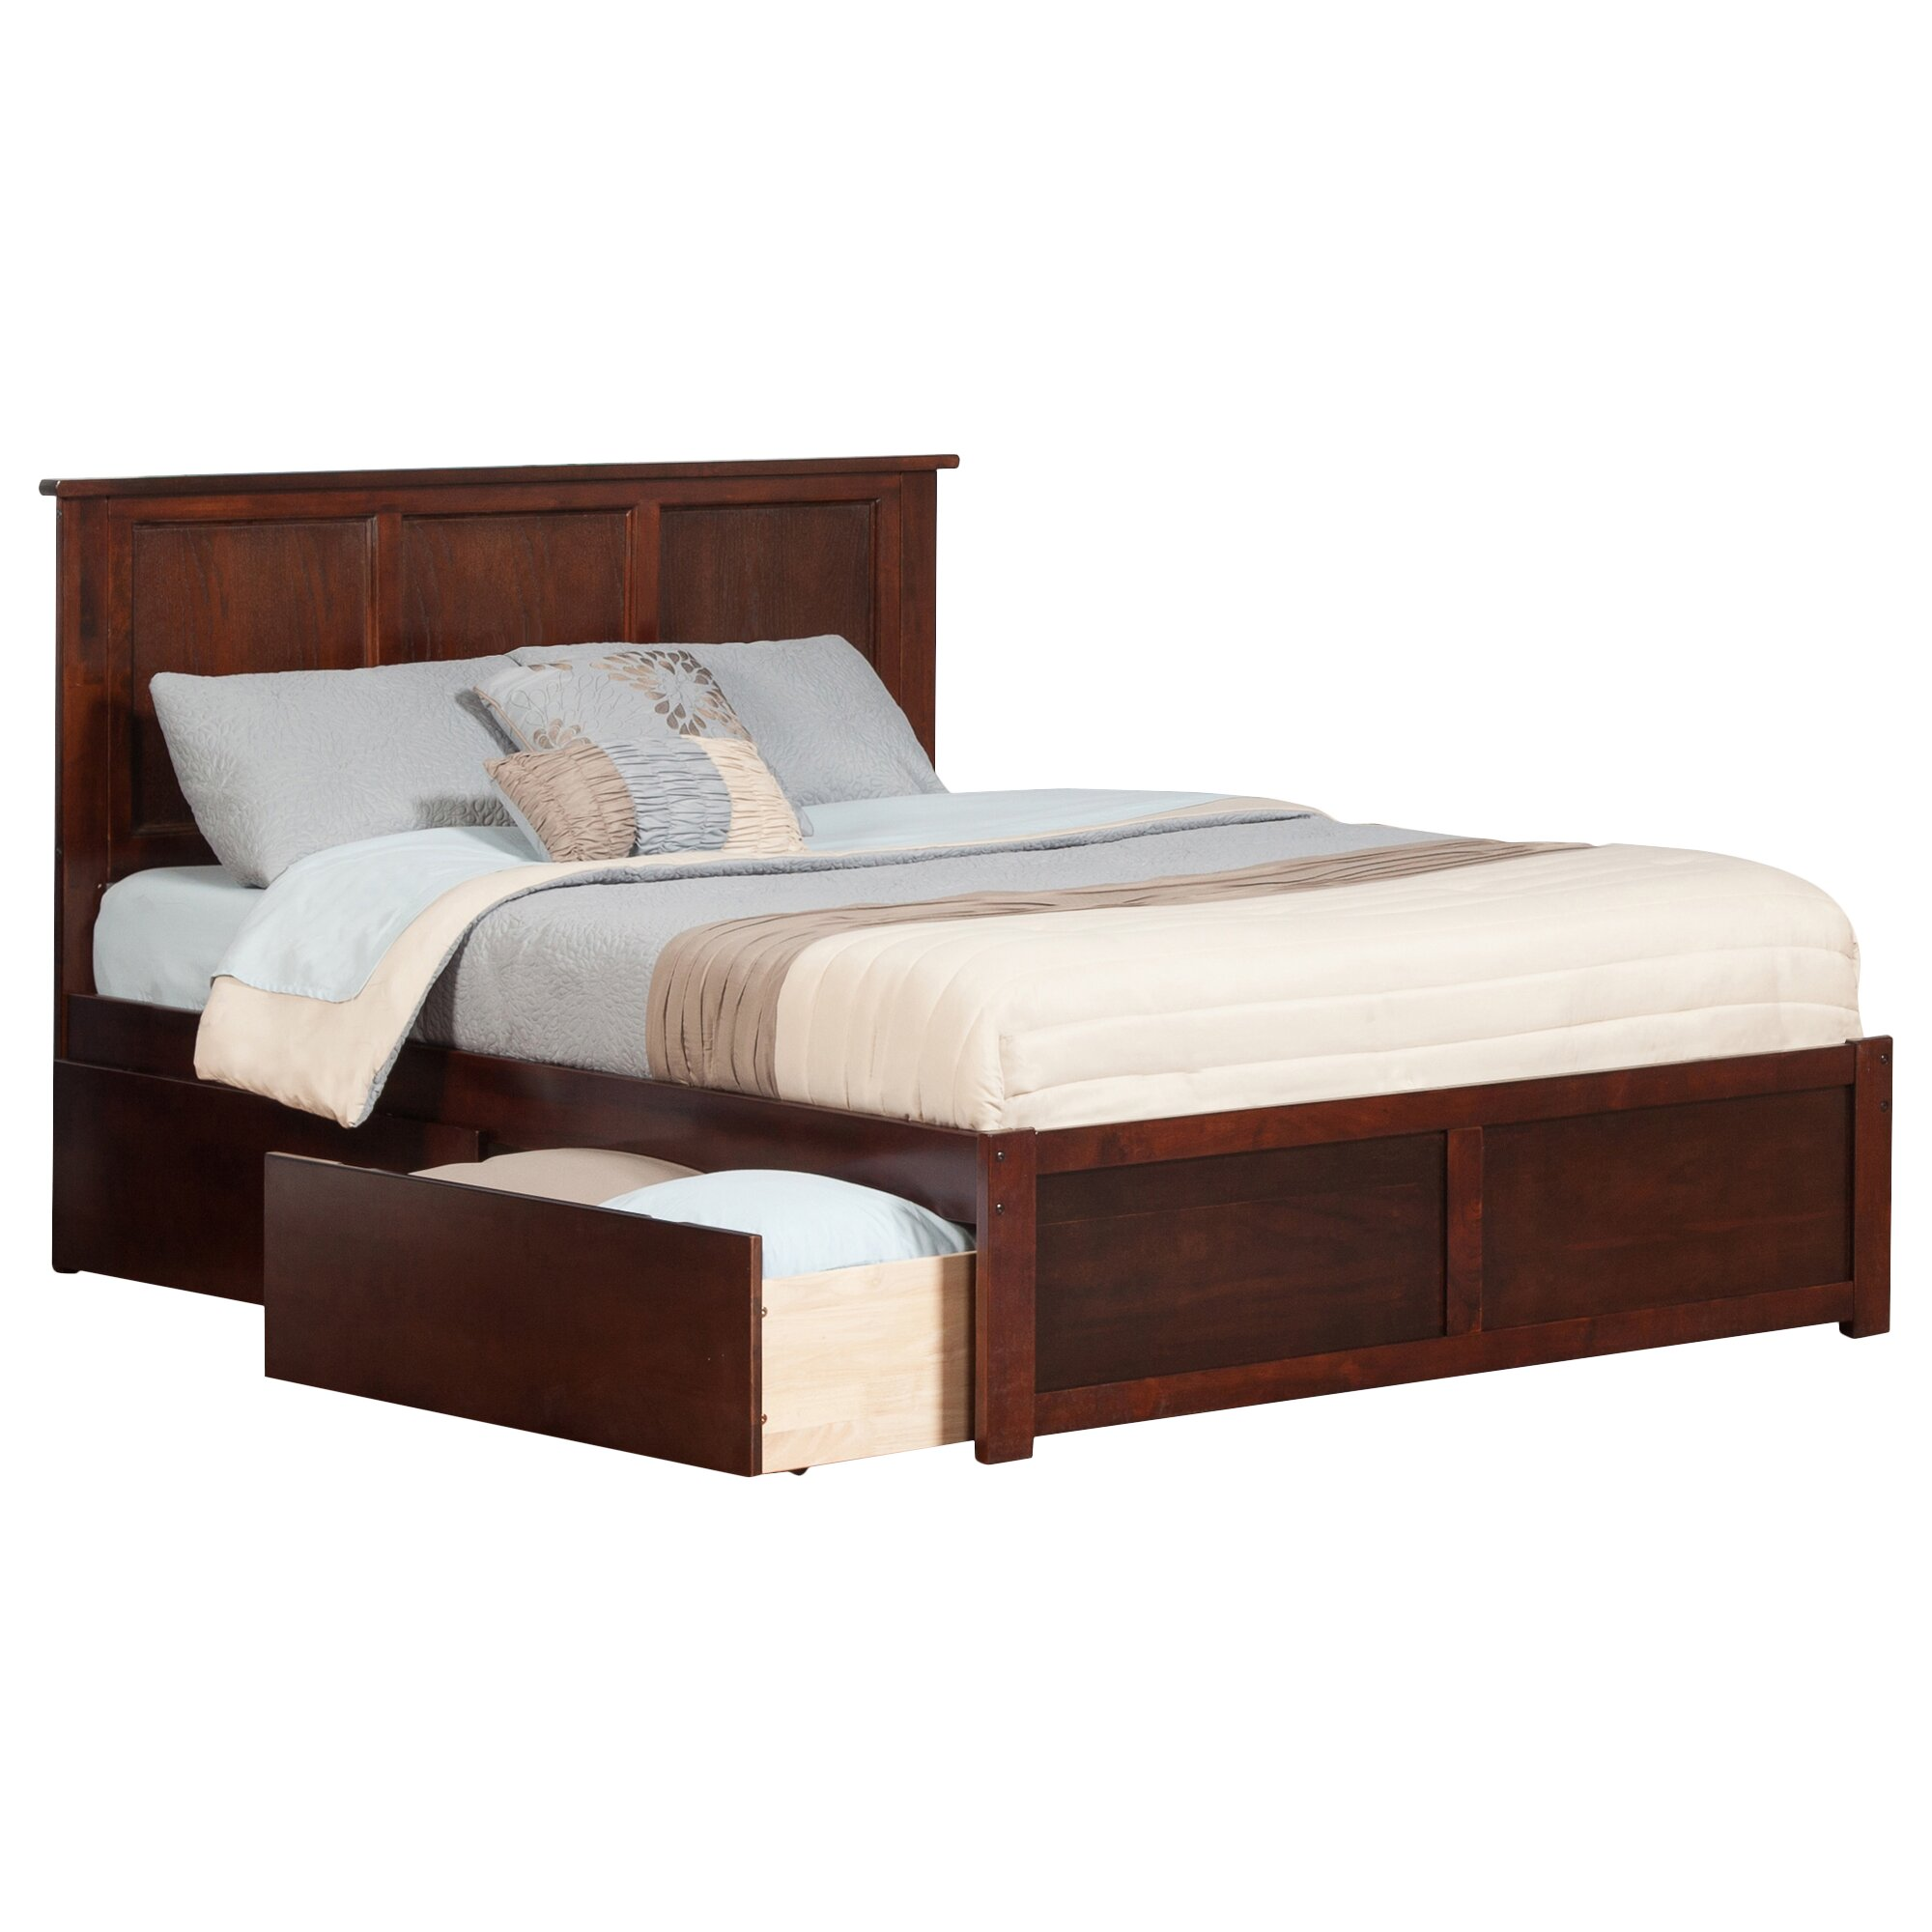 Platform Storage Beds For Sale